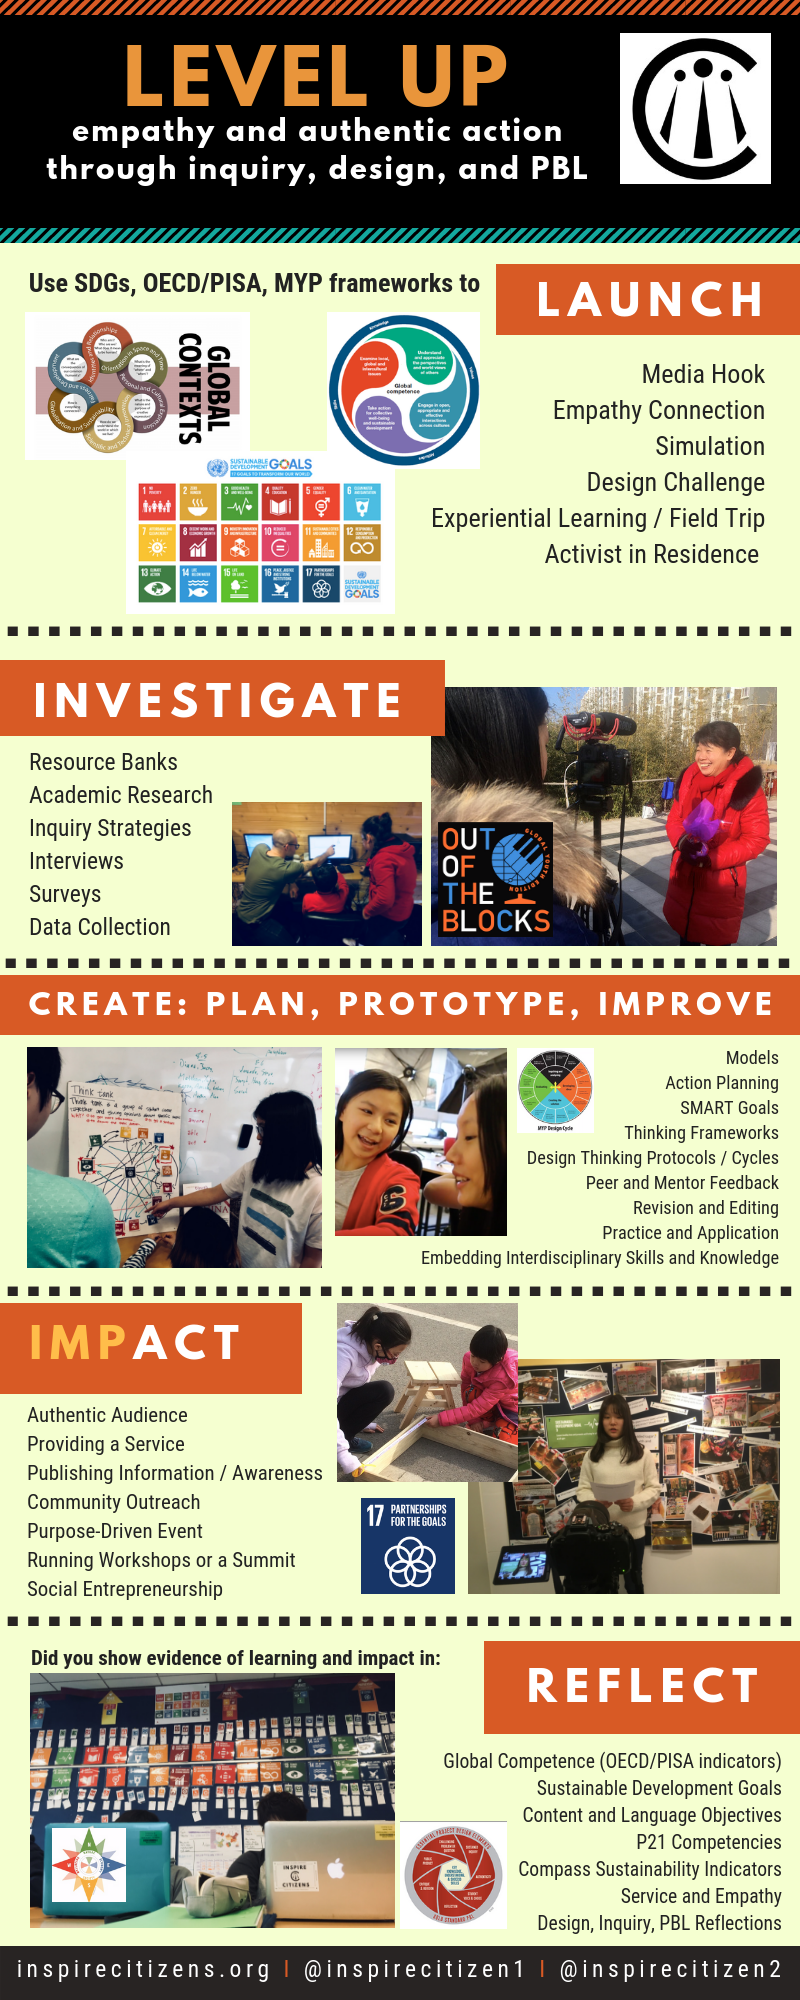 The Empathy to Action Inspire Citizens' framework integrates best practices of PBL, design thinking, and global competence to meet standards and criteria in an authentic and powerful way.